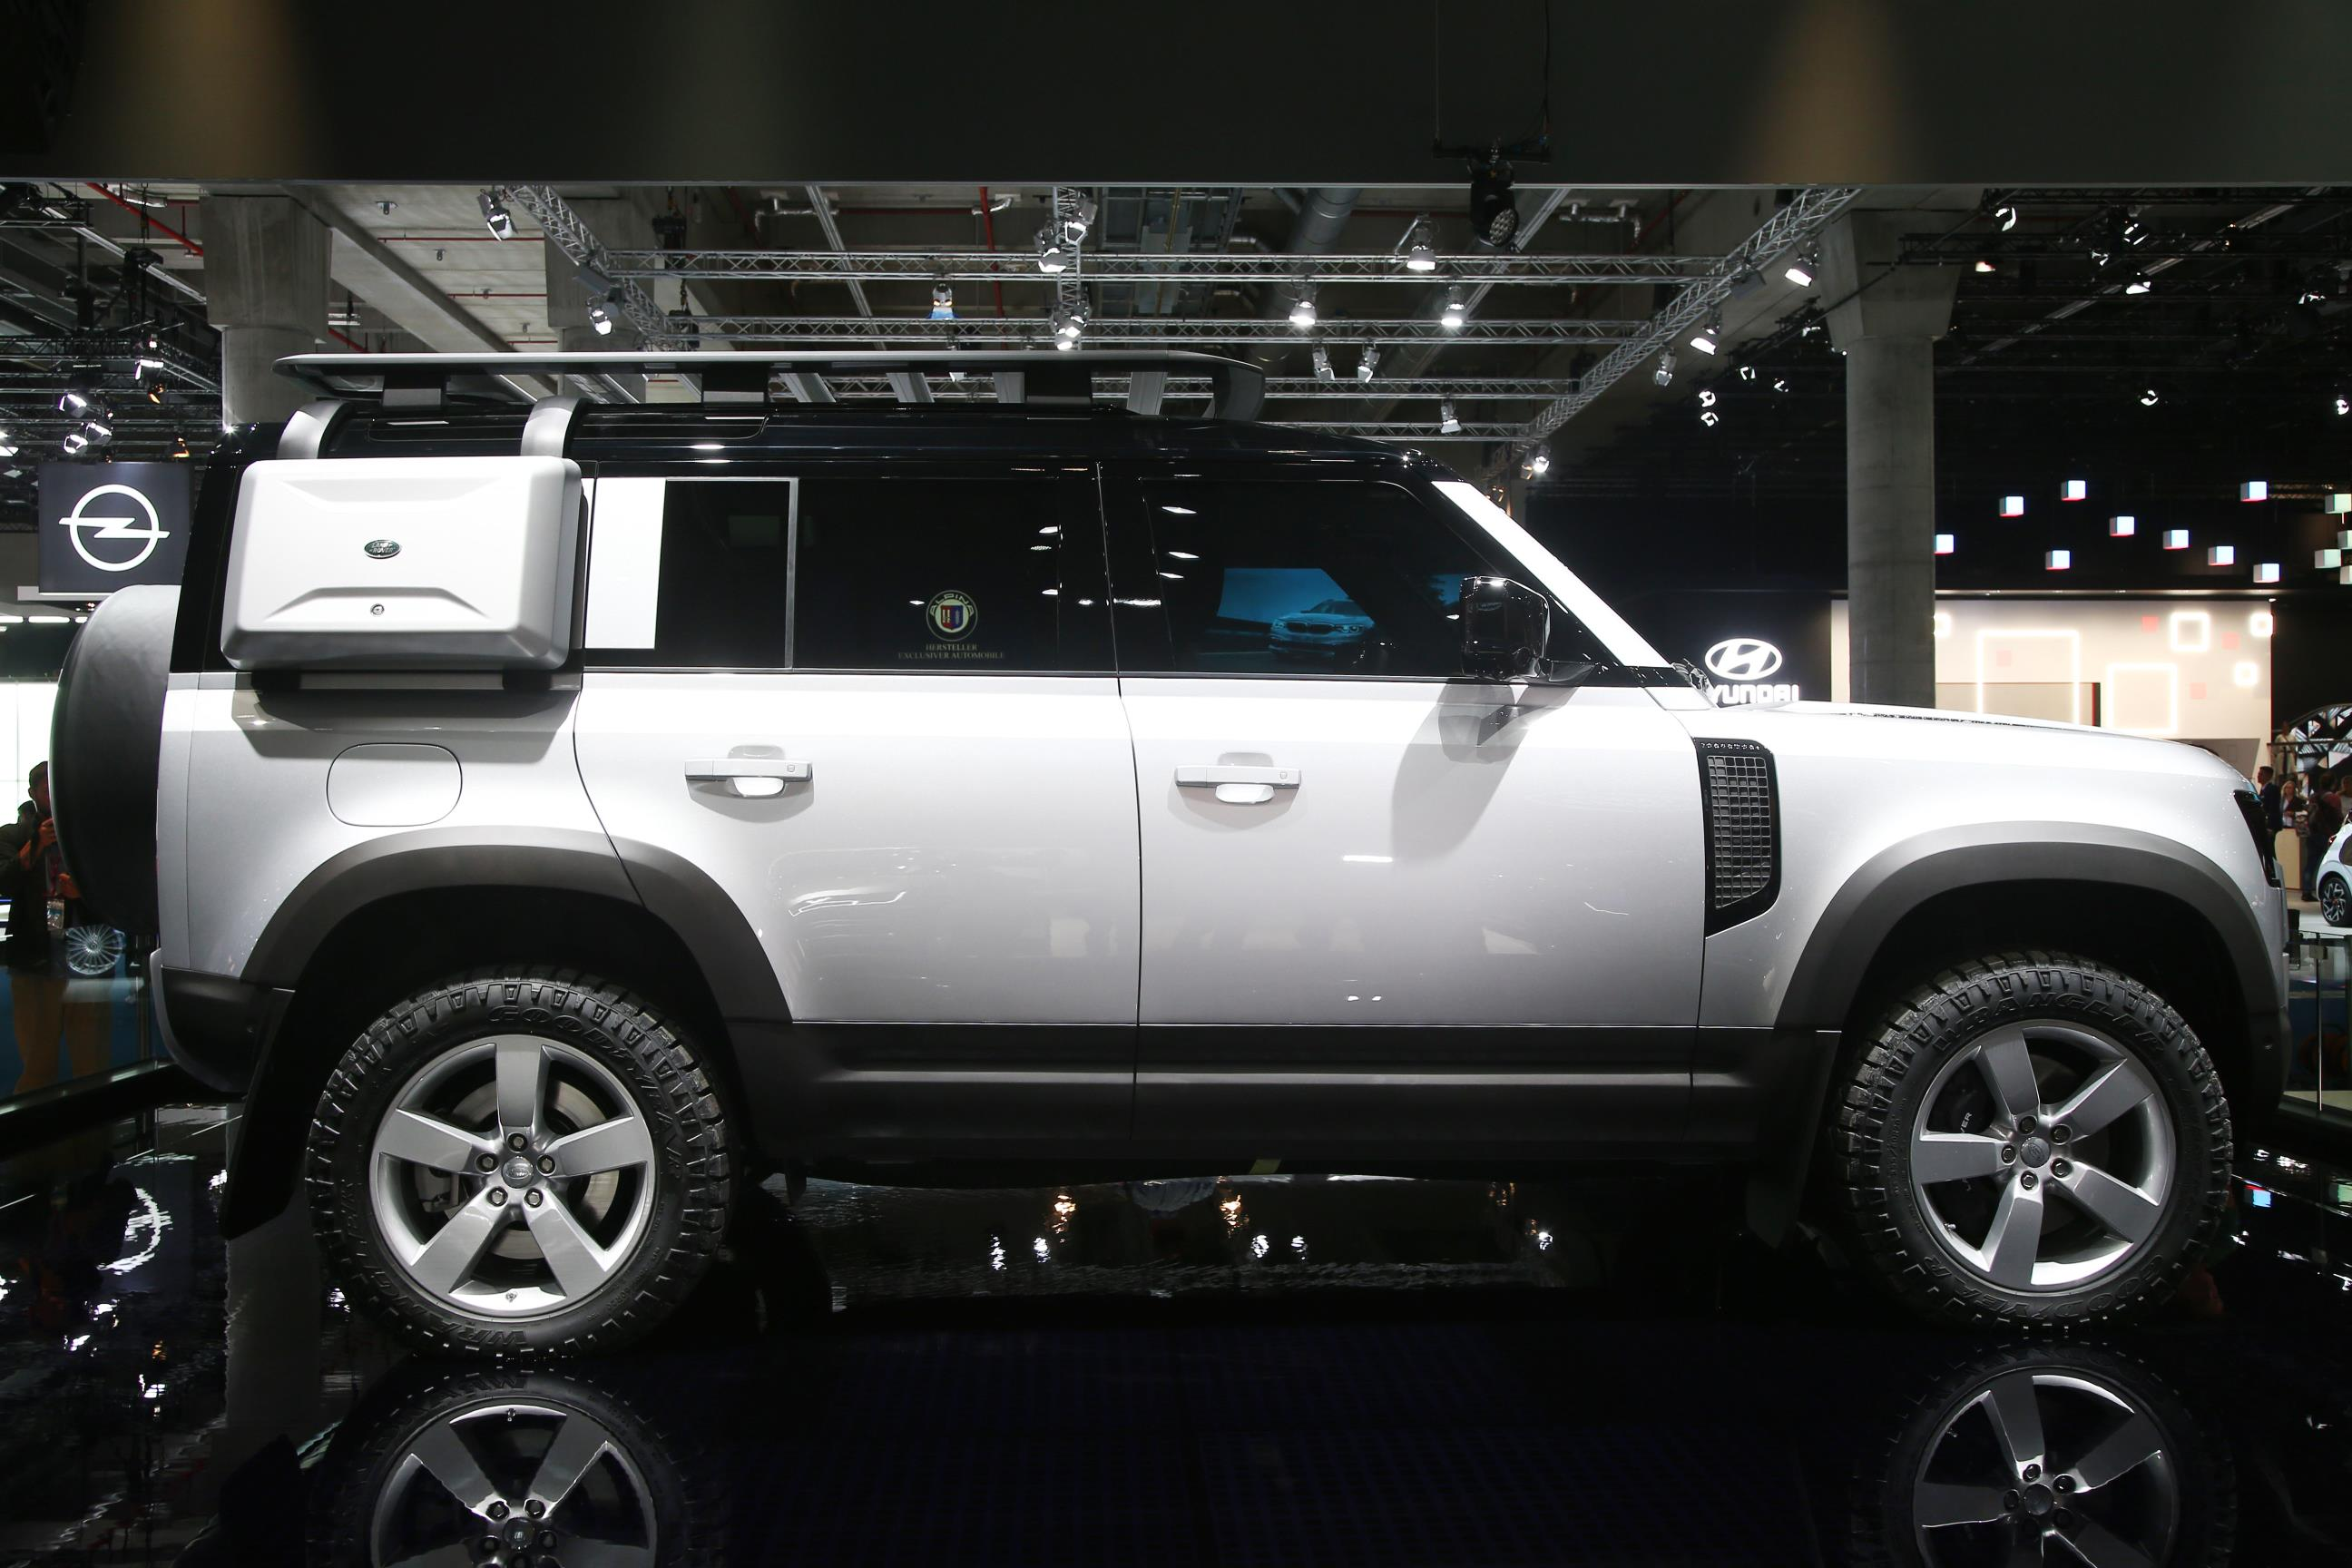 2020 Land Rover Defender 110 Side View